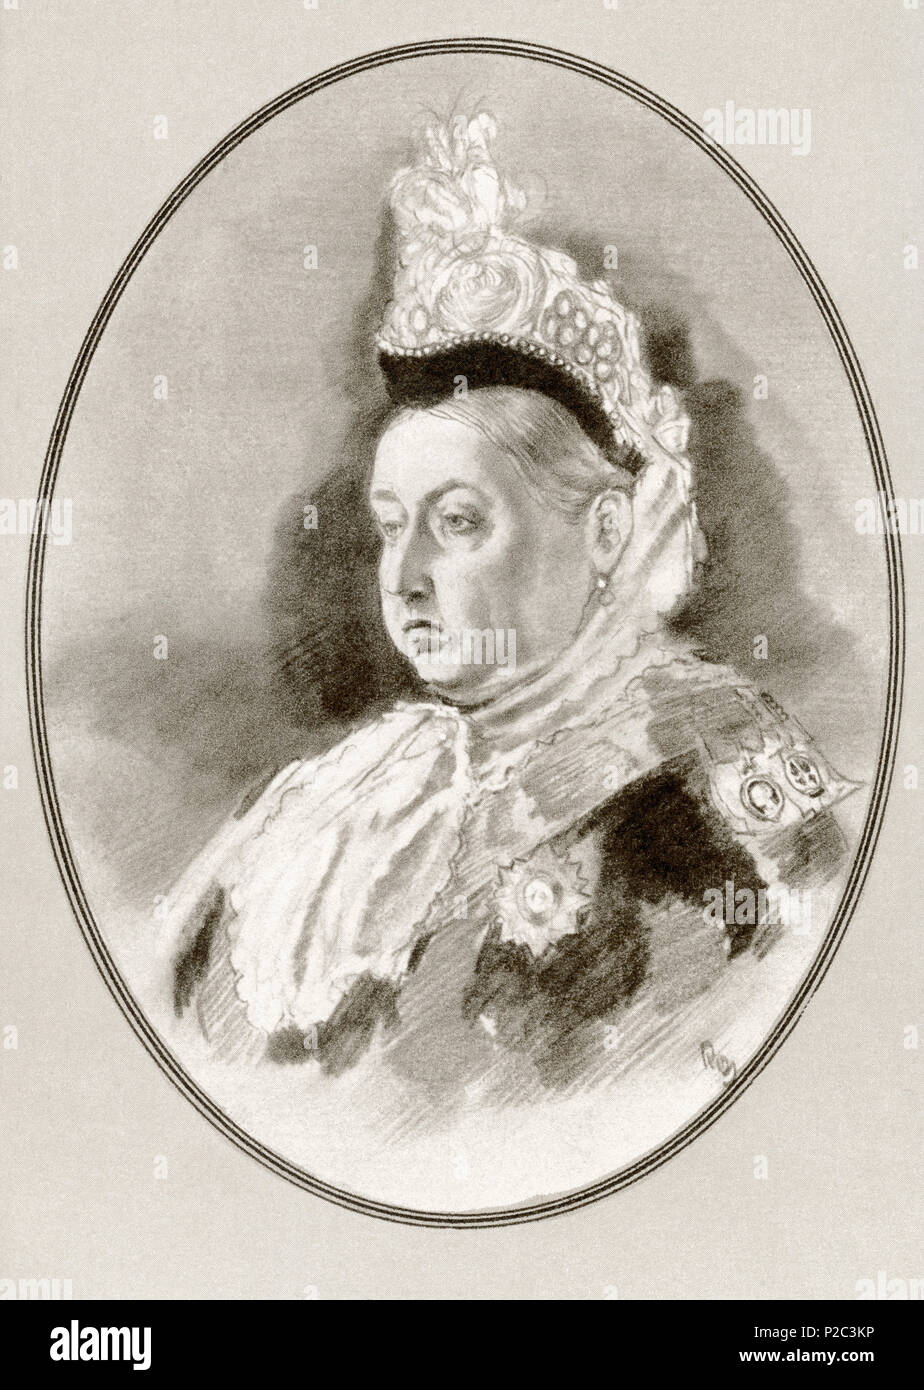 Victoria, 1819 – 1901.  Queen of the United Kingdom of Great Britain and Ireland and Empress of India.  Illustration by Gordon Ross, American artist and illustrator (1873-1946), from Living Biographies of Famous Rulers. - Stock Image